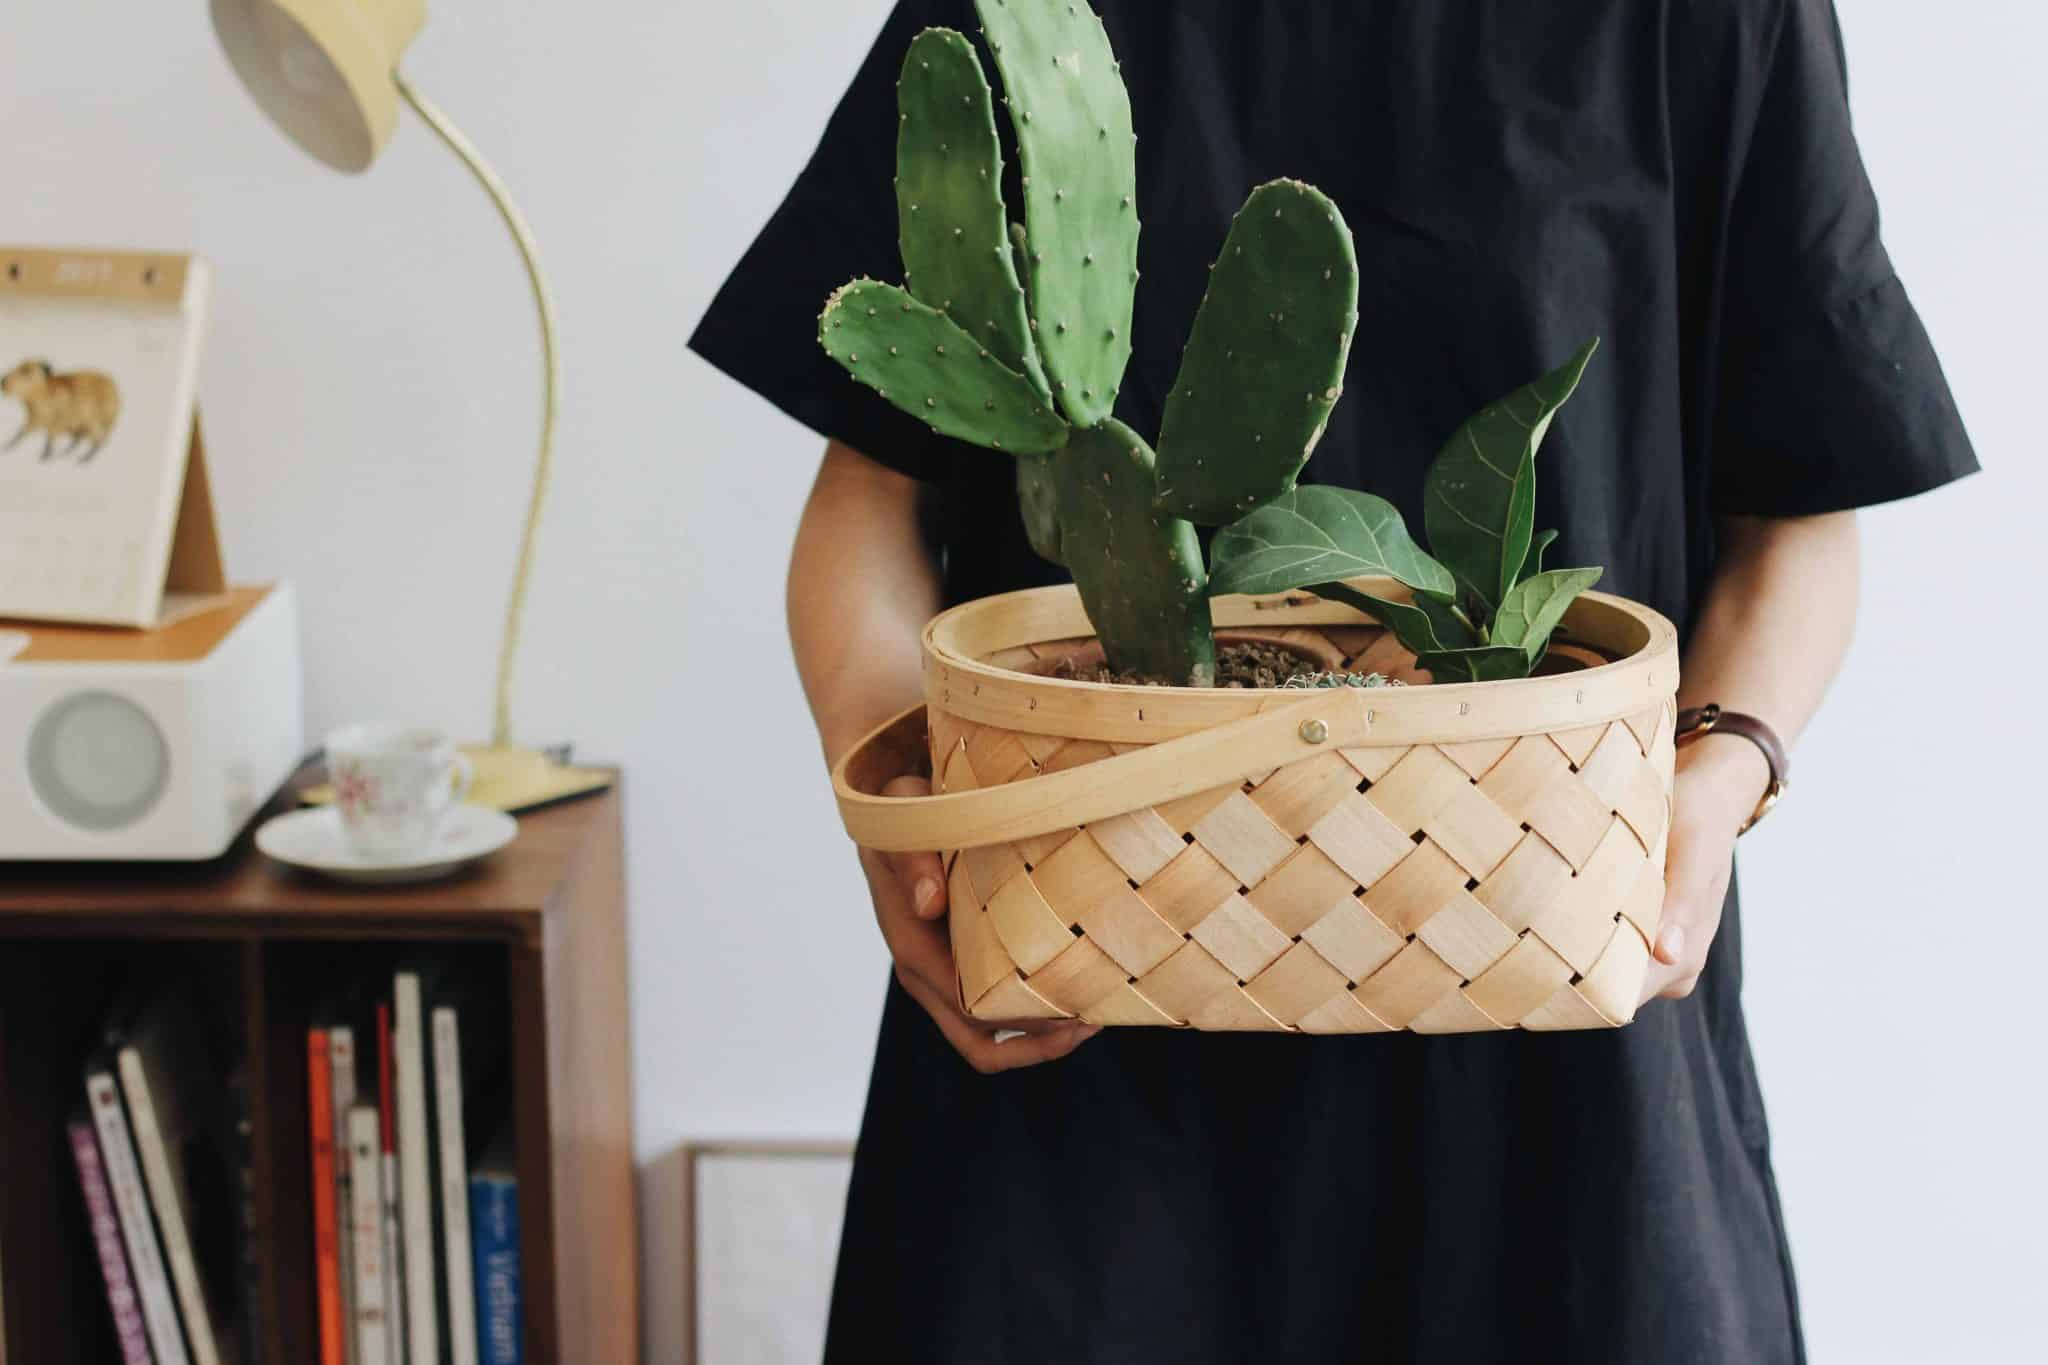 saving money for a home - consider moving in temporarily with friends or family (picture of woman holding plant)